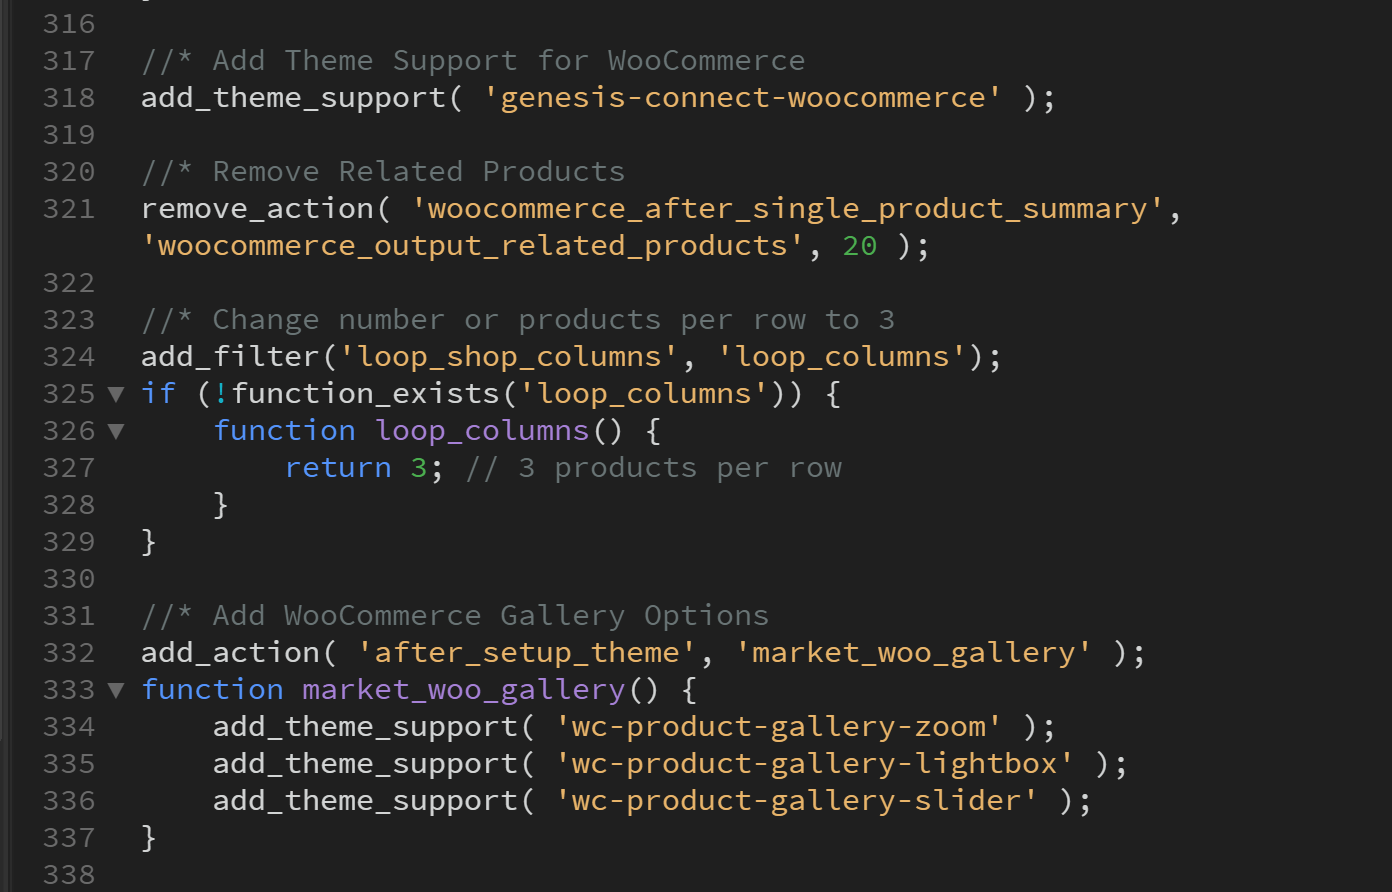 Screenshot of WordPress functions file code with Woocommerce functions